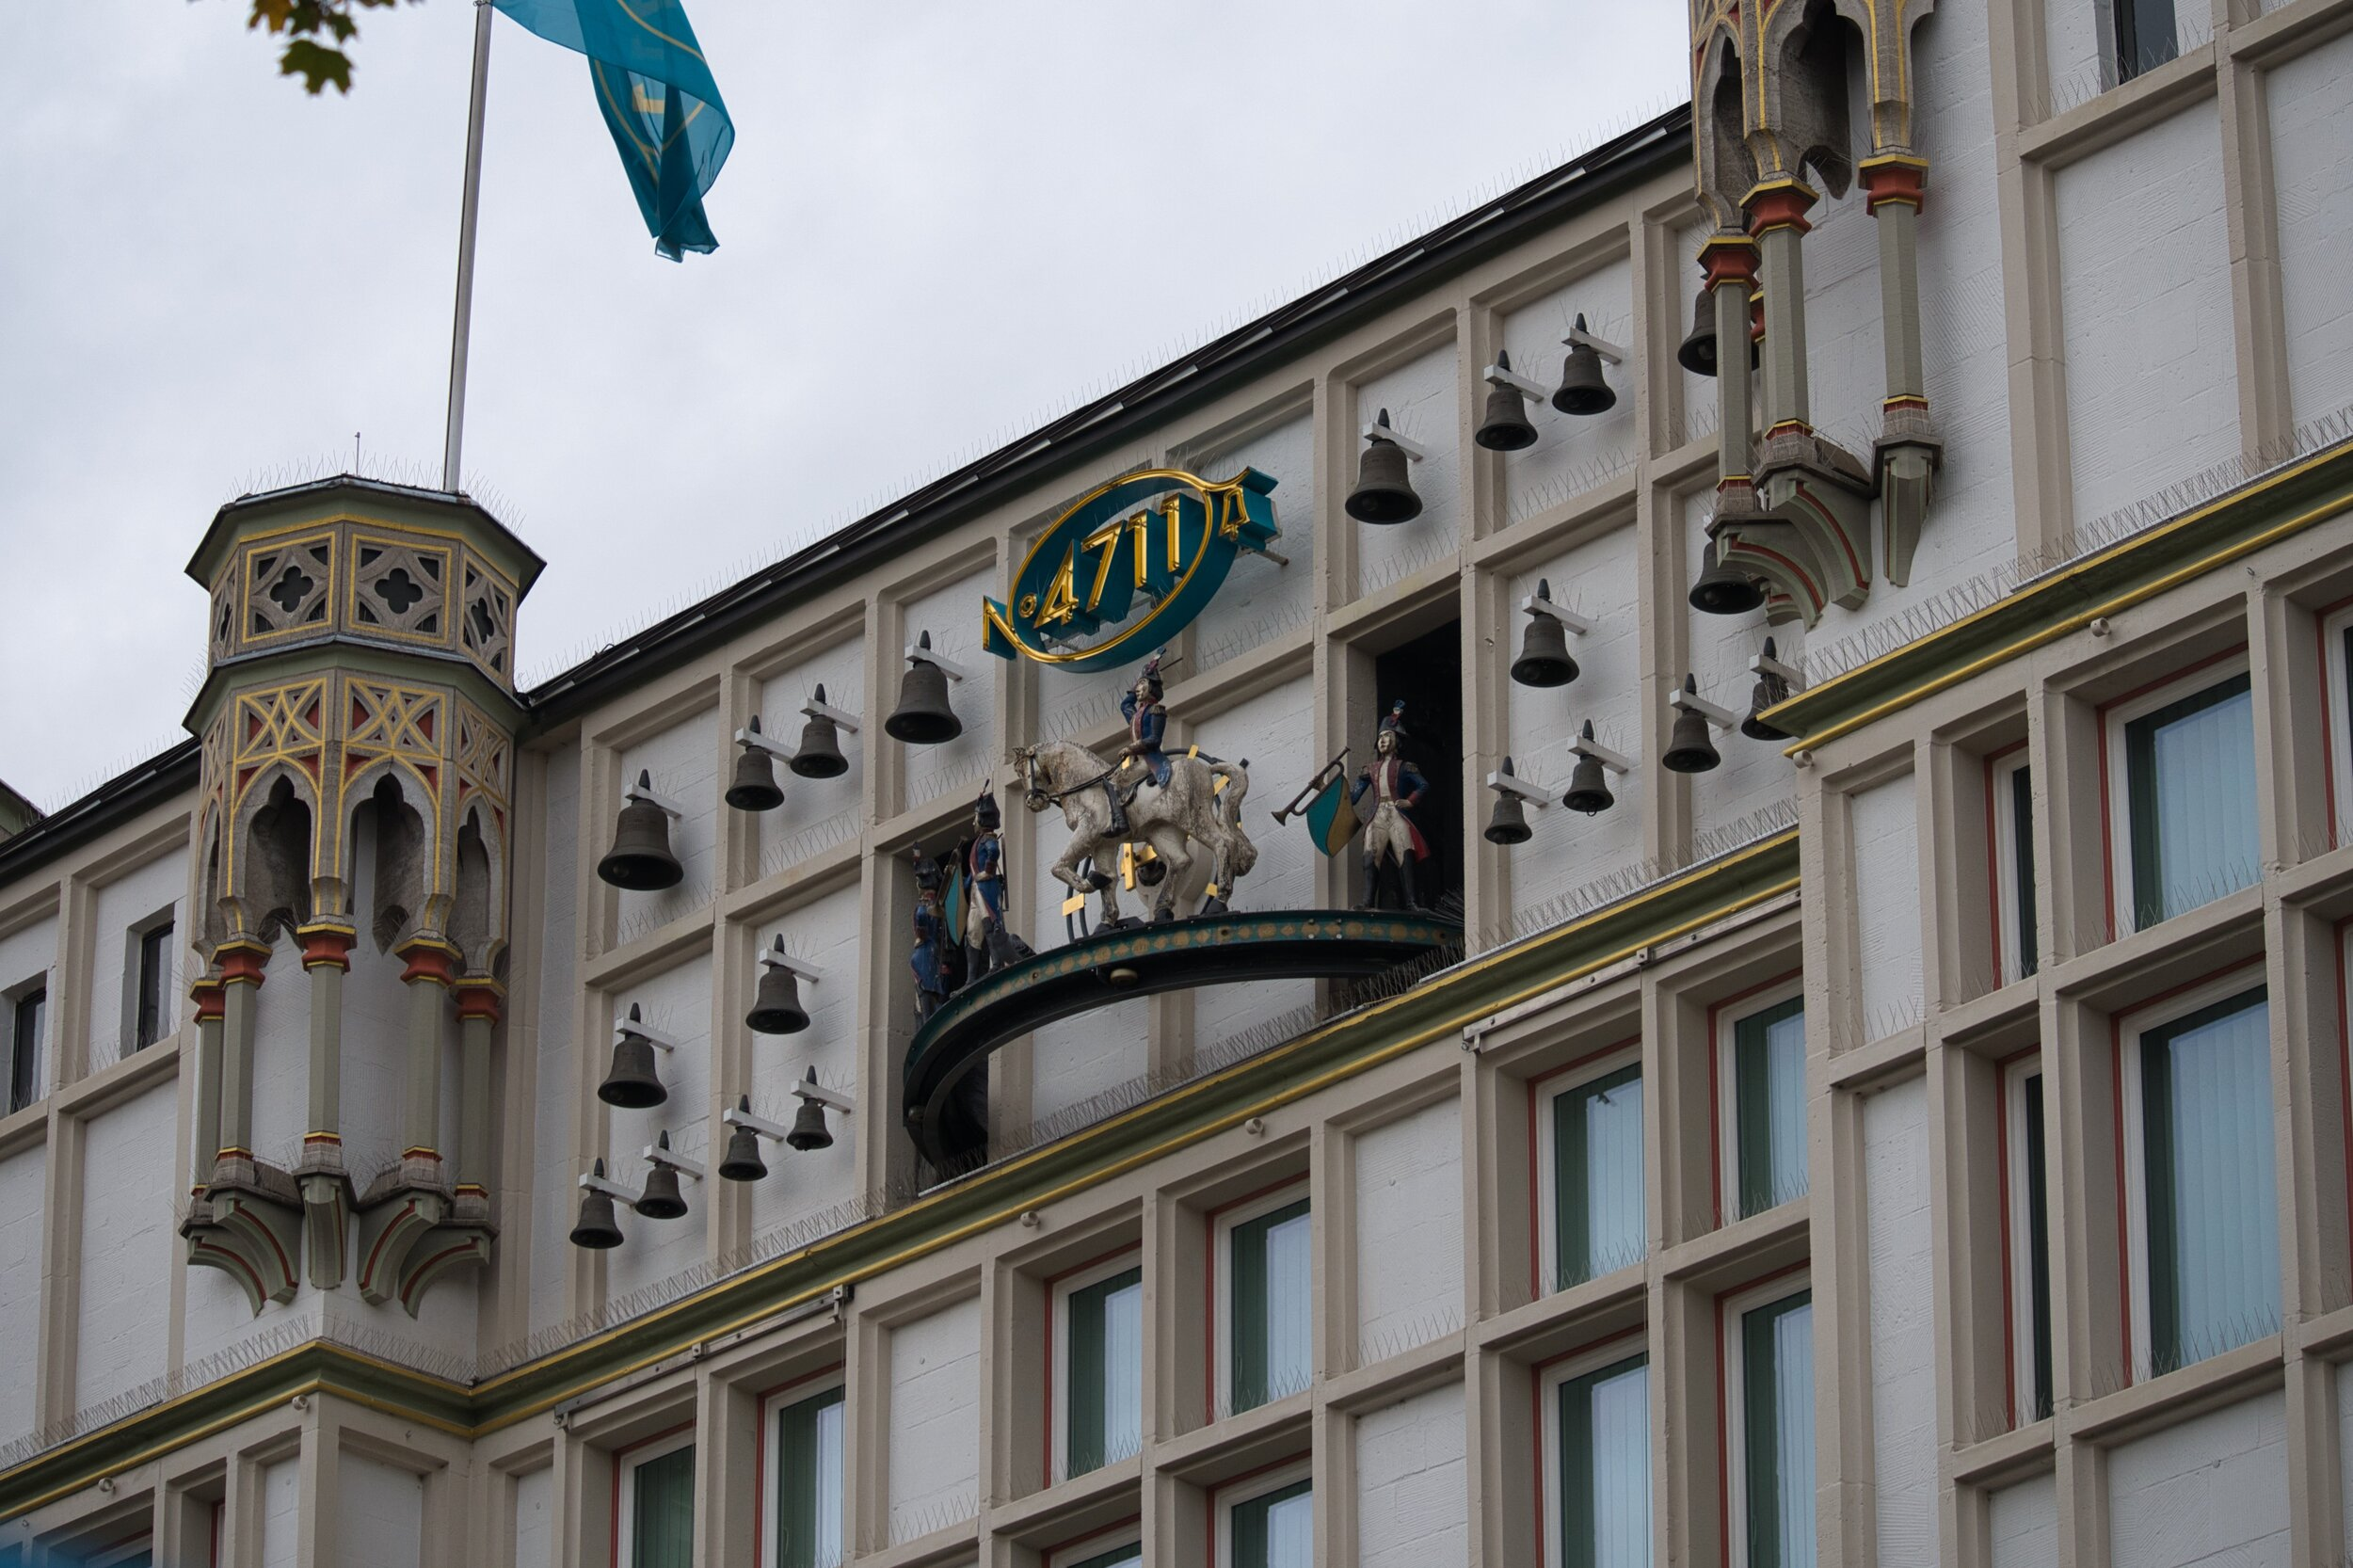 Animated clock on Eau de Cologne building